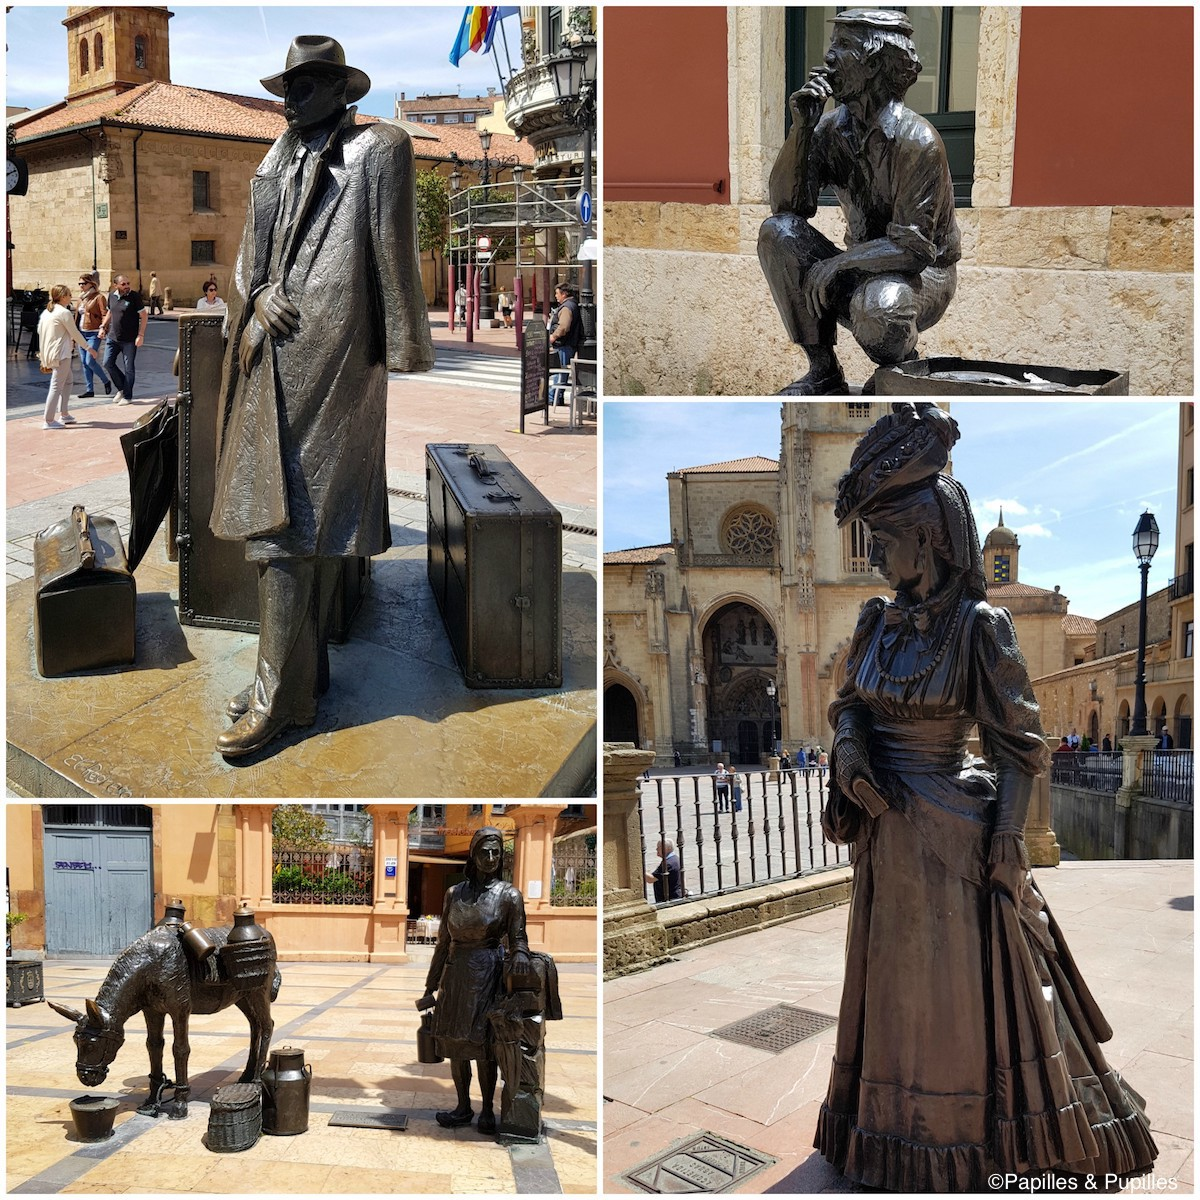 Les Statues d'Oviedo